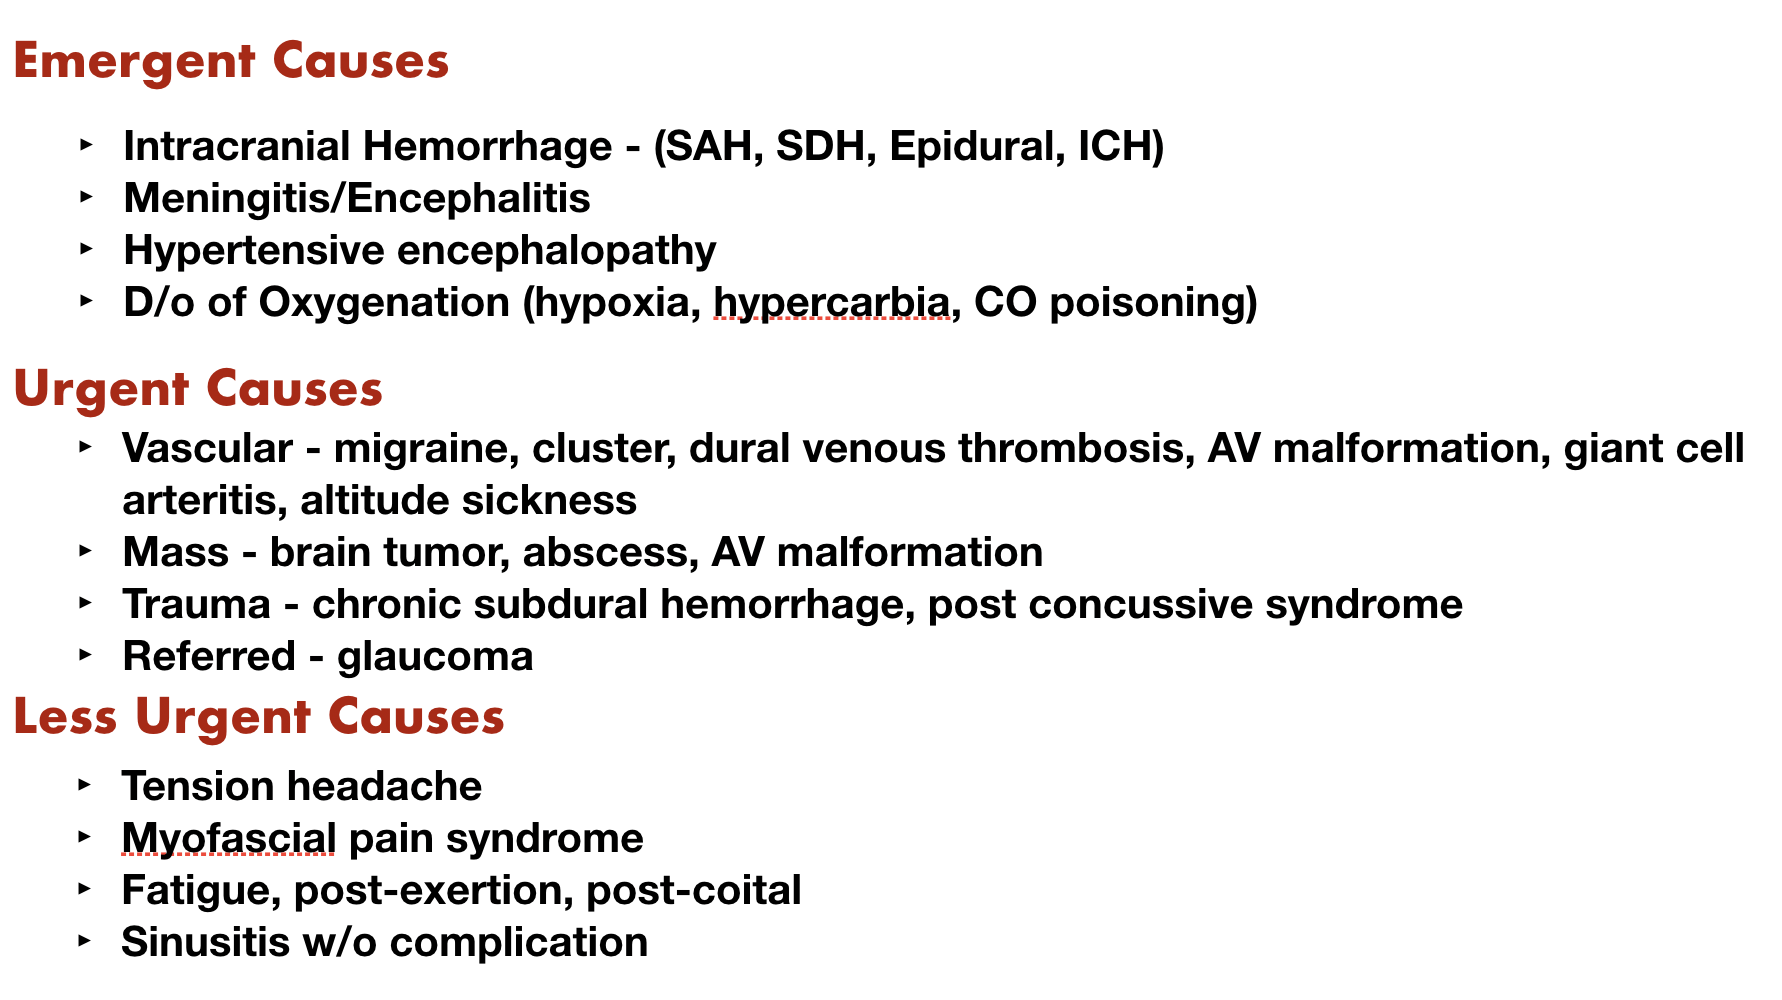 Table 1 Common Causes of Headache   Recreated from Table 32-1 Davis, V. Headache. Emergency Medicine: An Approach to Clinical Problem Solving, 2nd Edition. Chapter 32. pp 539.